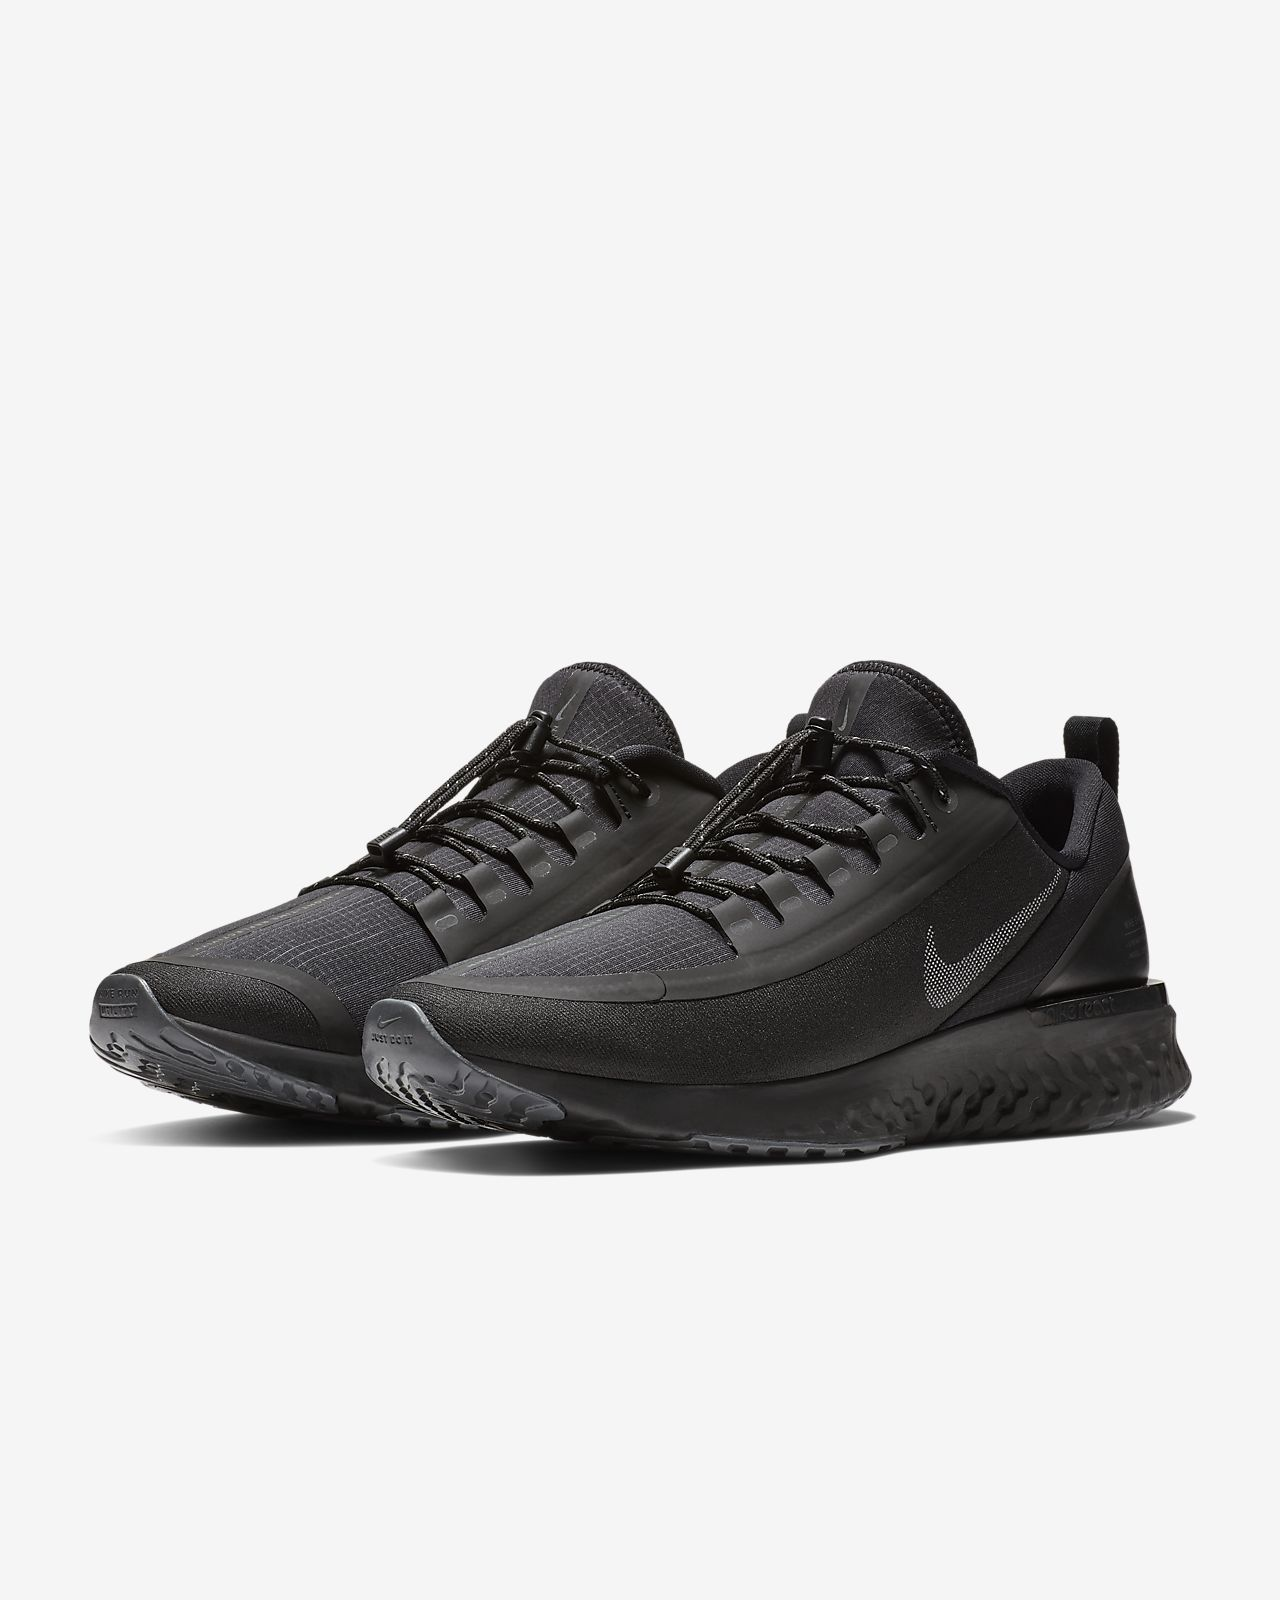 new concept 854bc 00bd6 ... Nike Odyssey React Shield Water-Repellent Mens Running Shoe